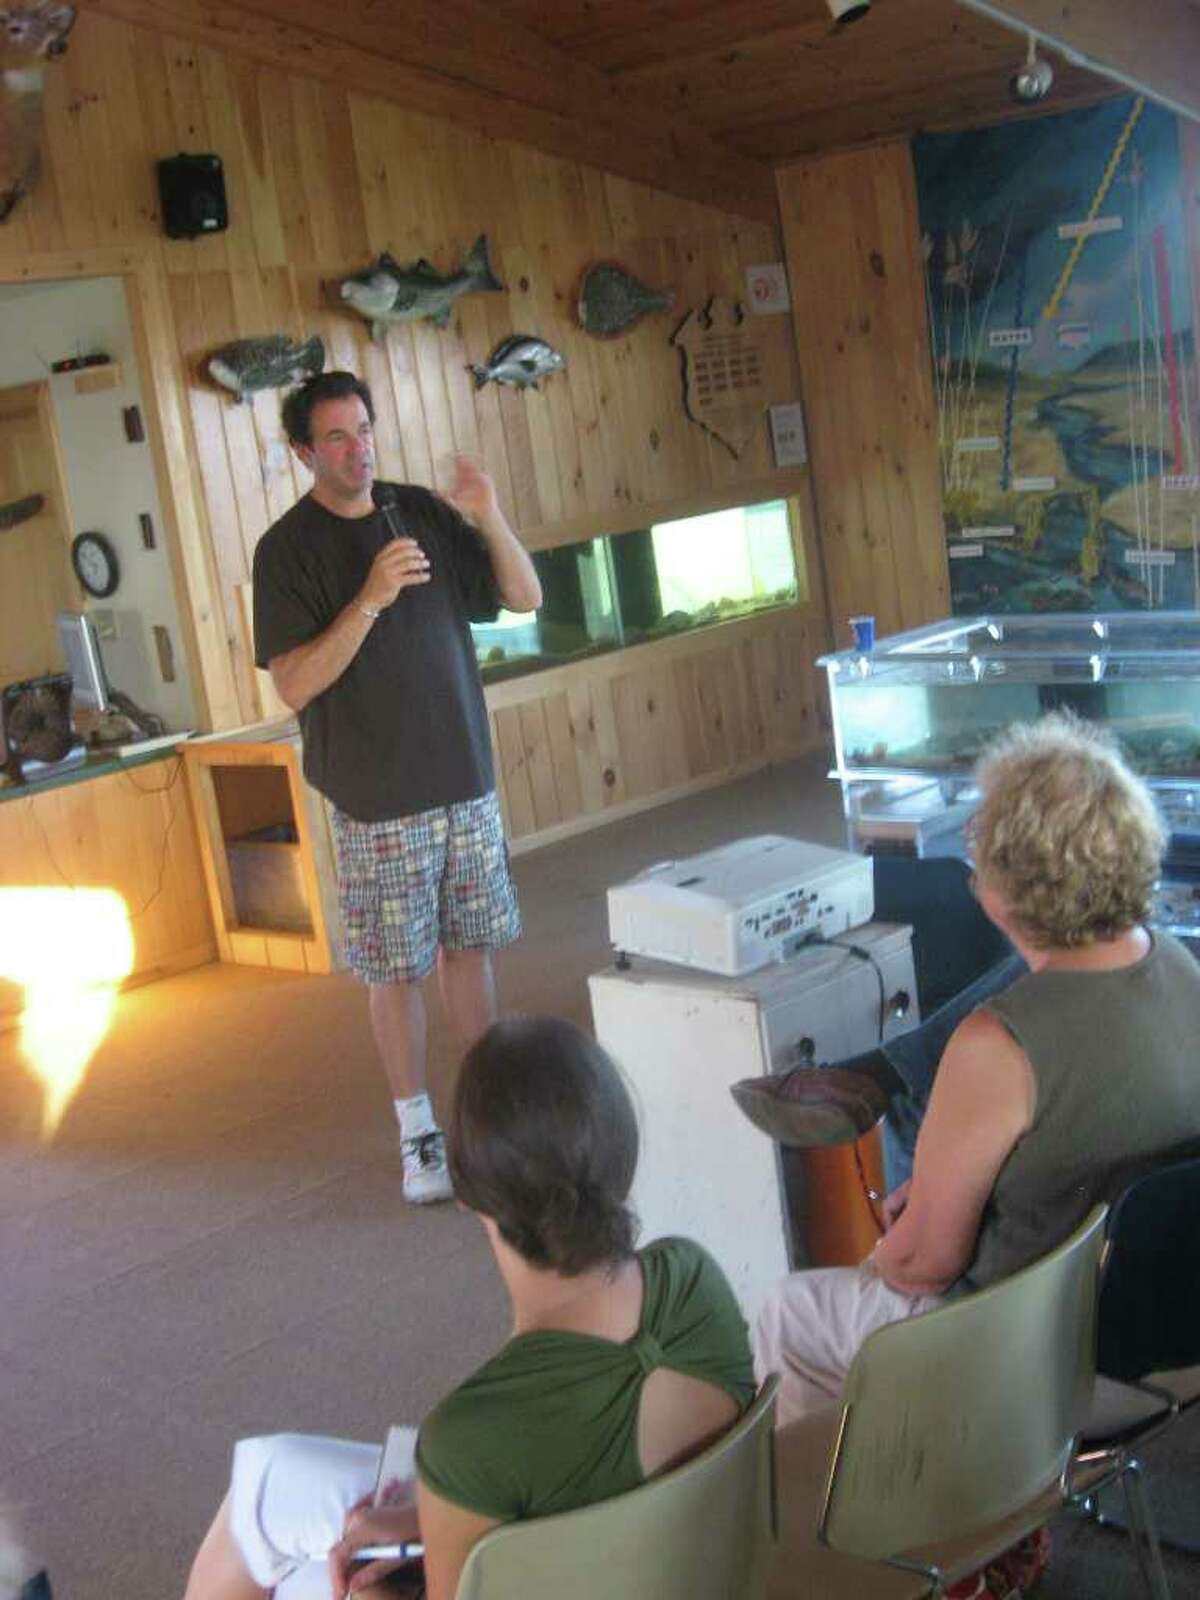 Dan Levinson, co-founder of Westport Green Village Initiative (GVI), was the featured speaker of Thursday evening's